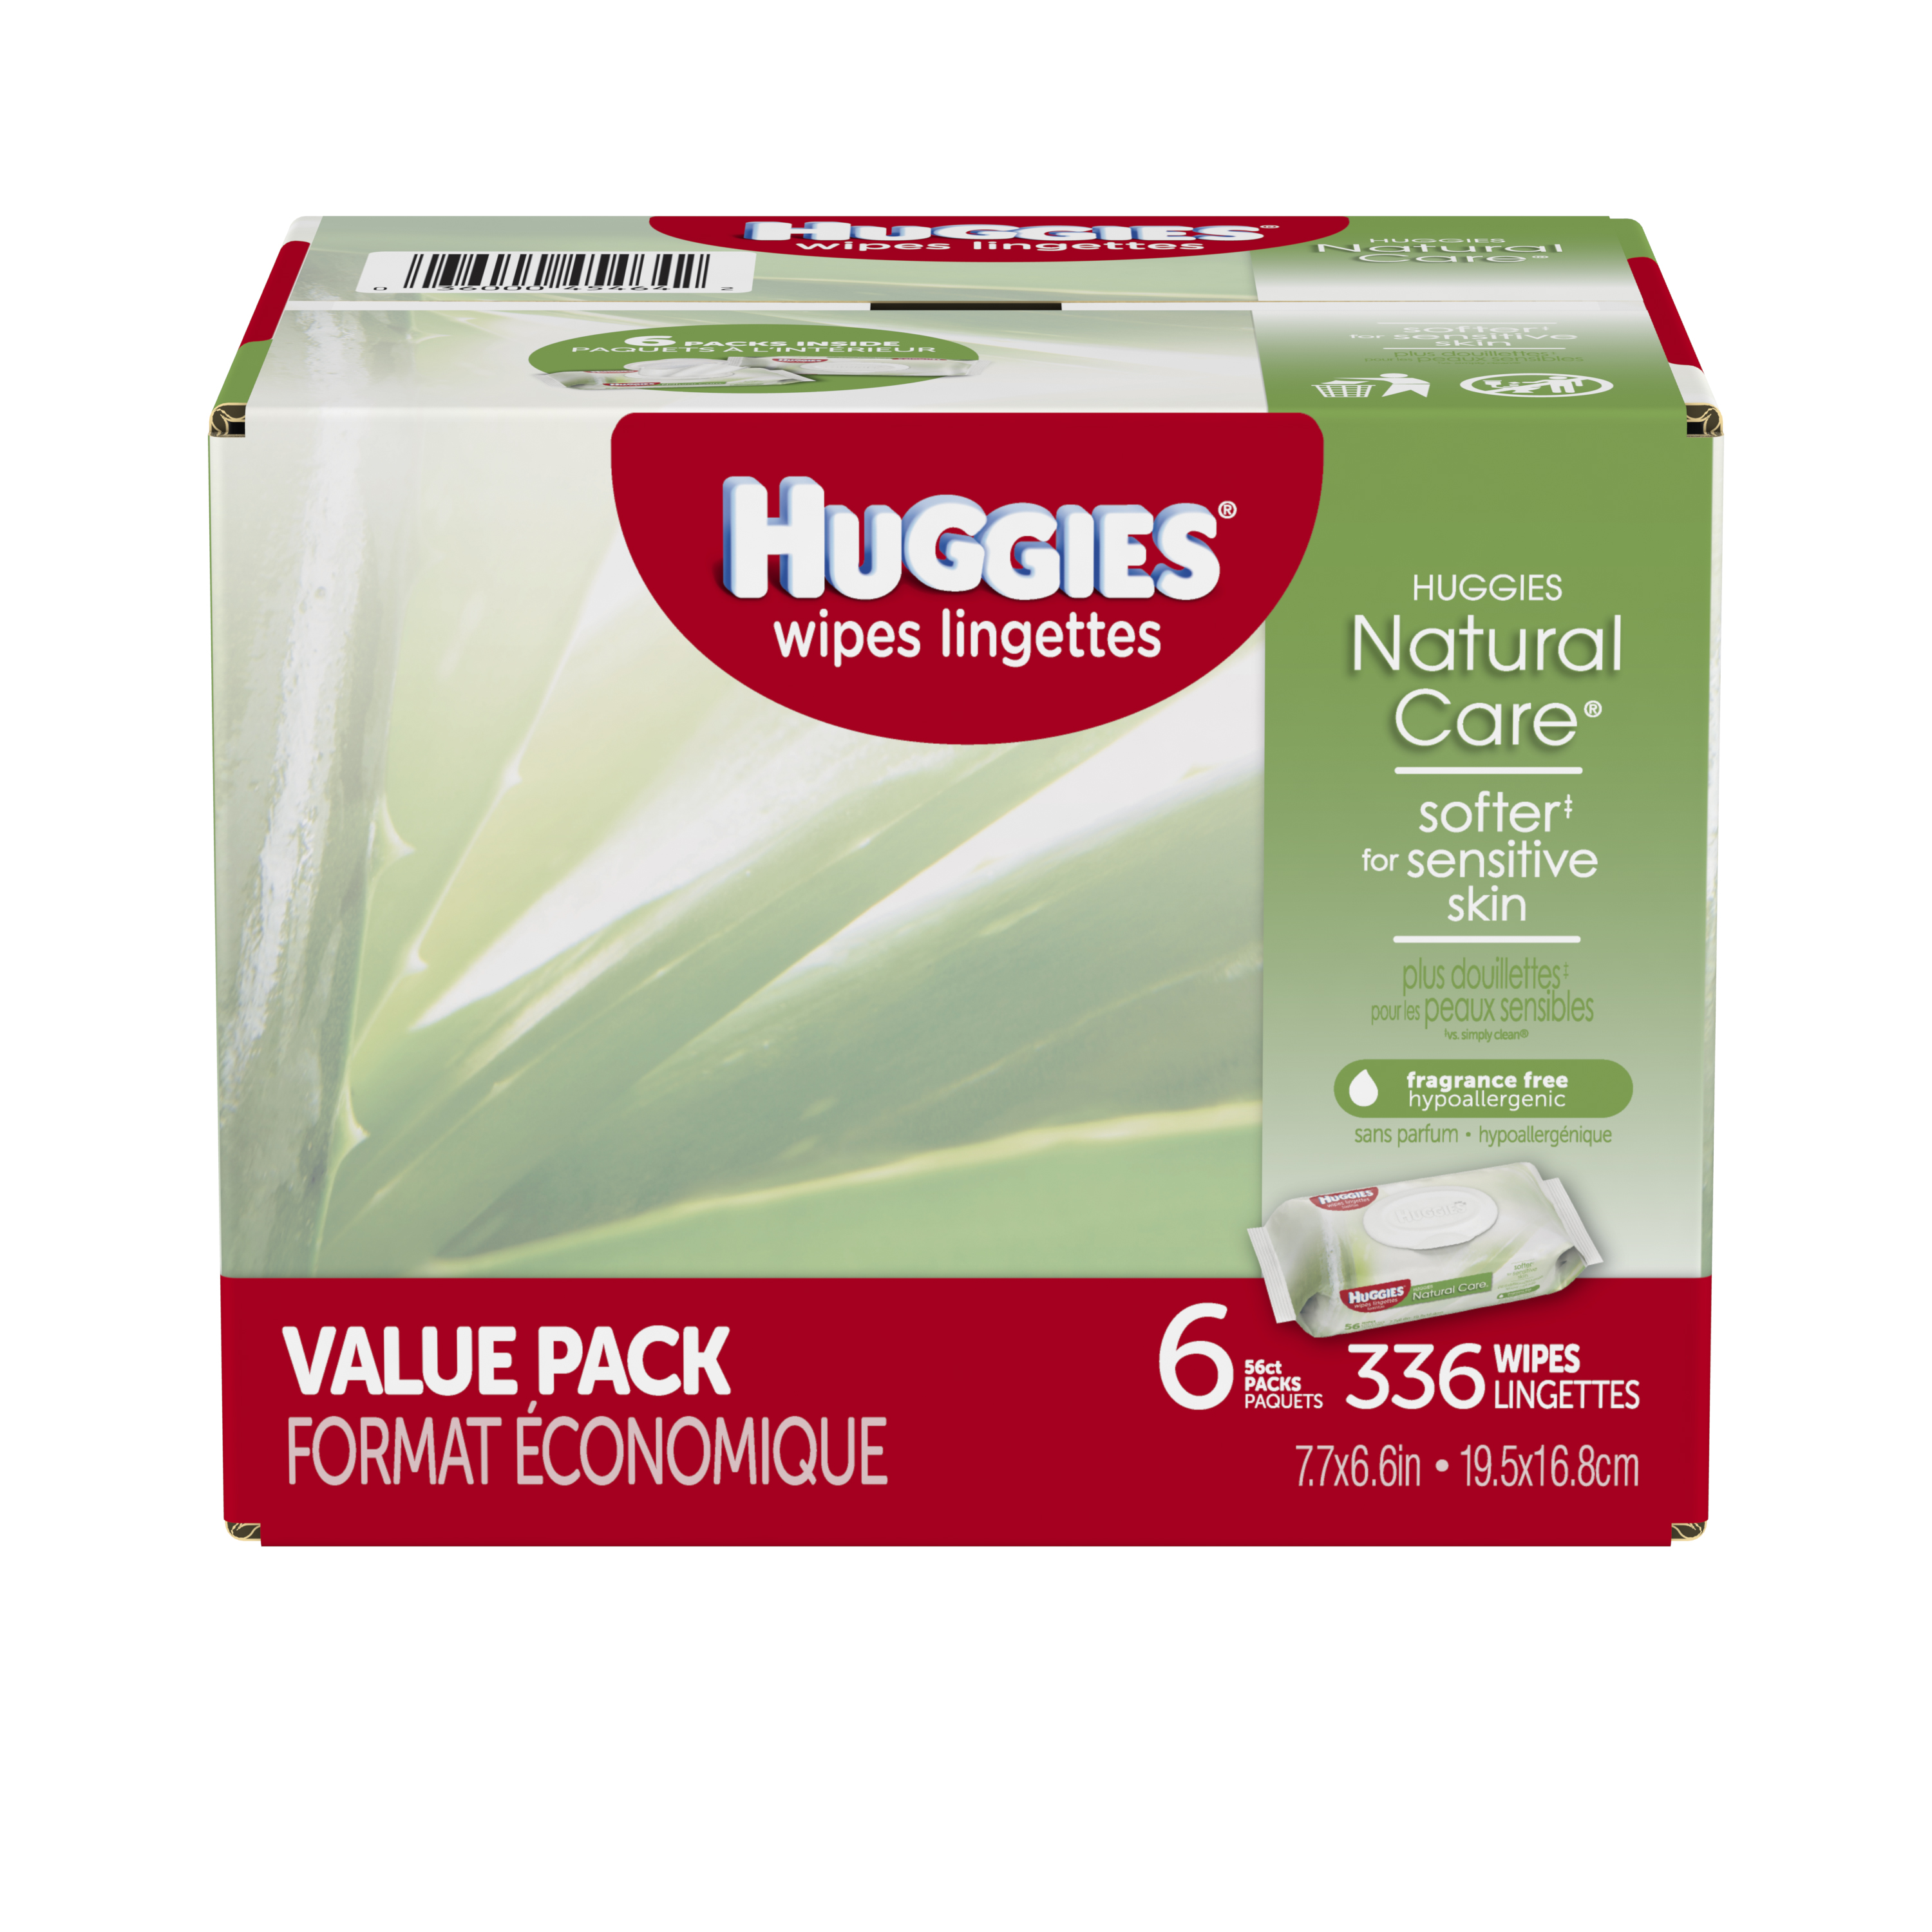 Huggies Natural Care Baby Wipes, Unscented, 6 packs of 56 (336 ct) by HUGGIES